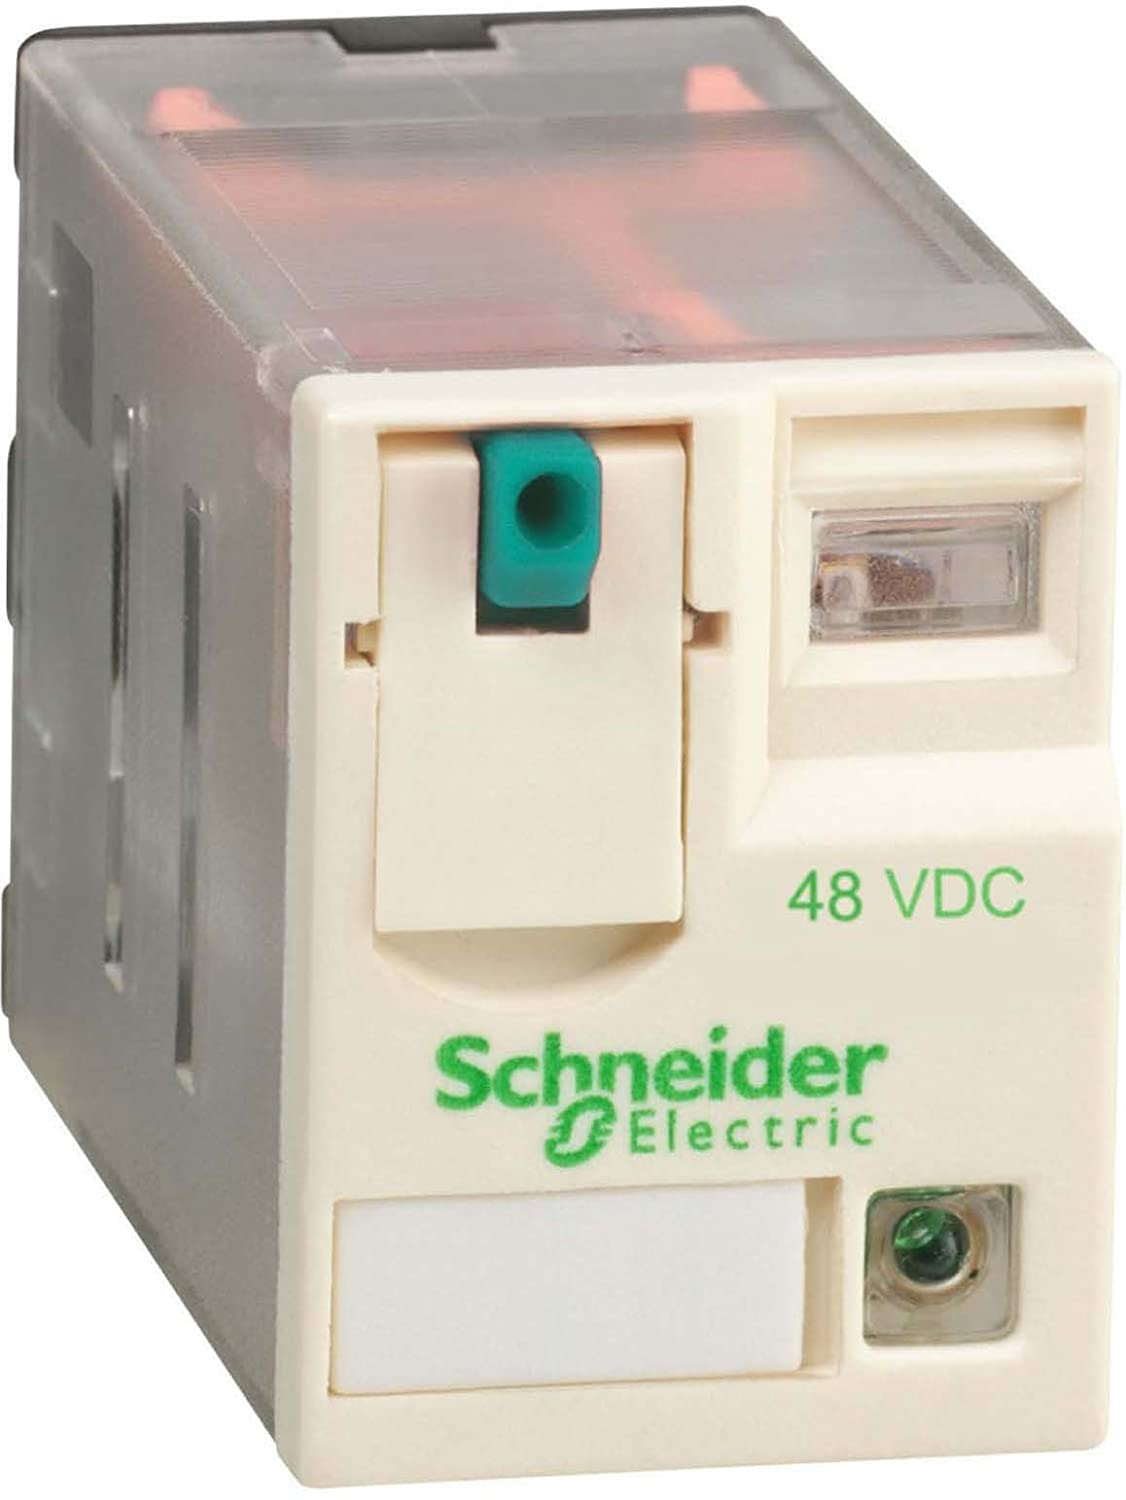 Schneider Electric RXM4AB2ED Mini Relay+LED 48VDC, Miniature Plug-In Relay - Zelio Rxm 4 C/O 48 V Dc 6 A With Led